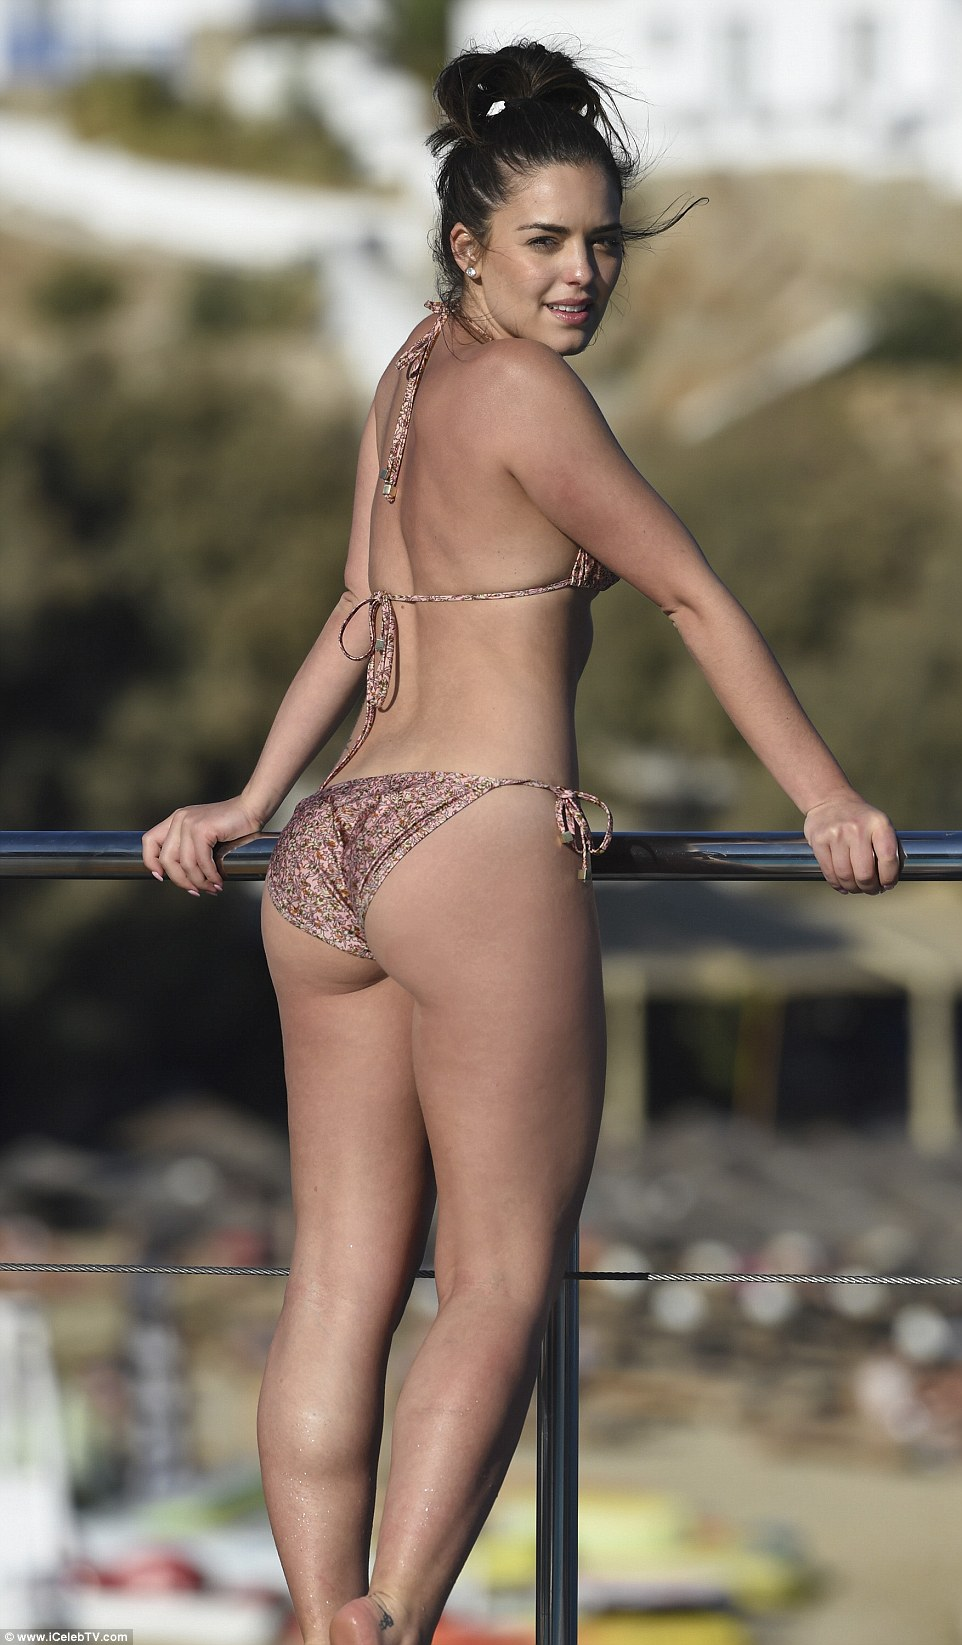 Perky! The 23-year-old stunner, who plays Paige Smith in the Australian soap, slipped into a barely-there bikini which showed off every inch of her curves as she enjoyed a poolside suntanning session